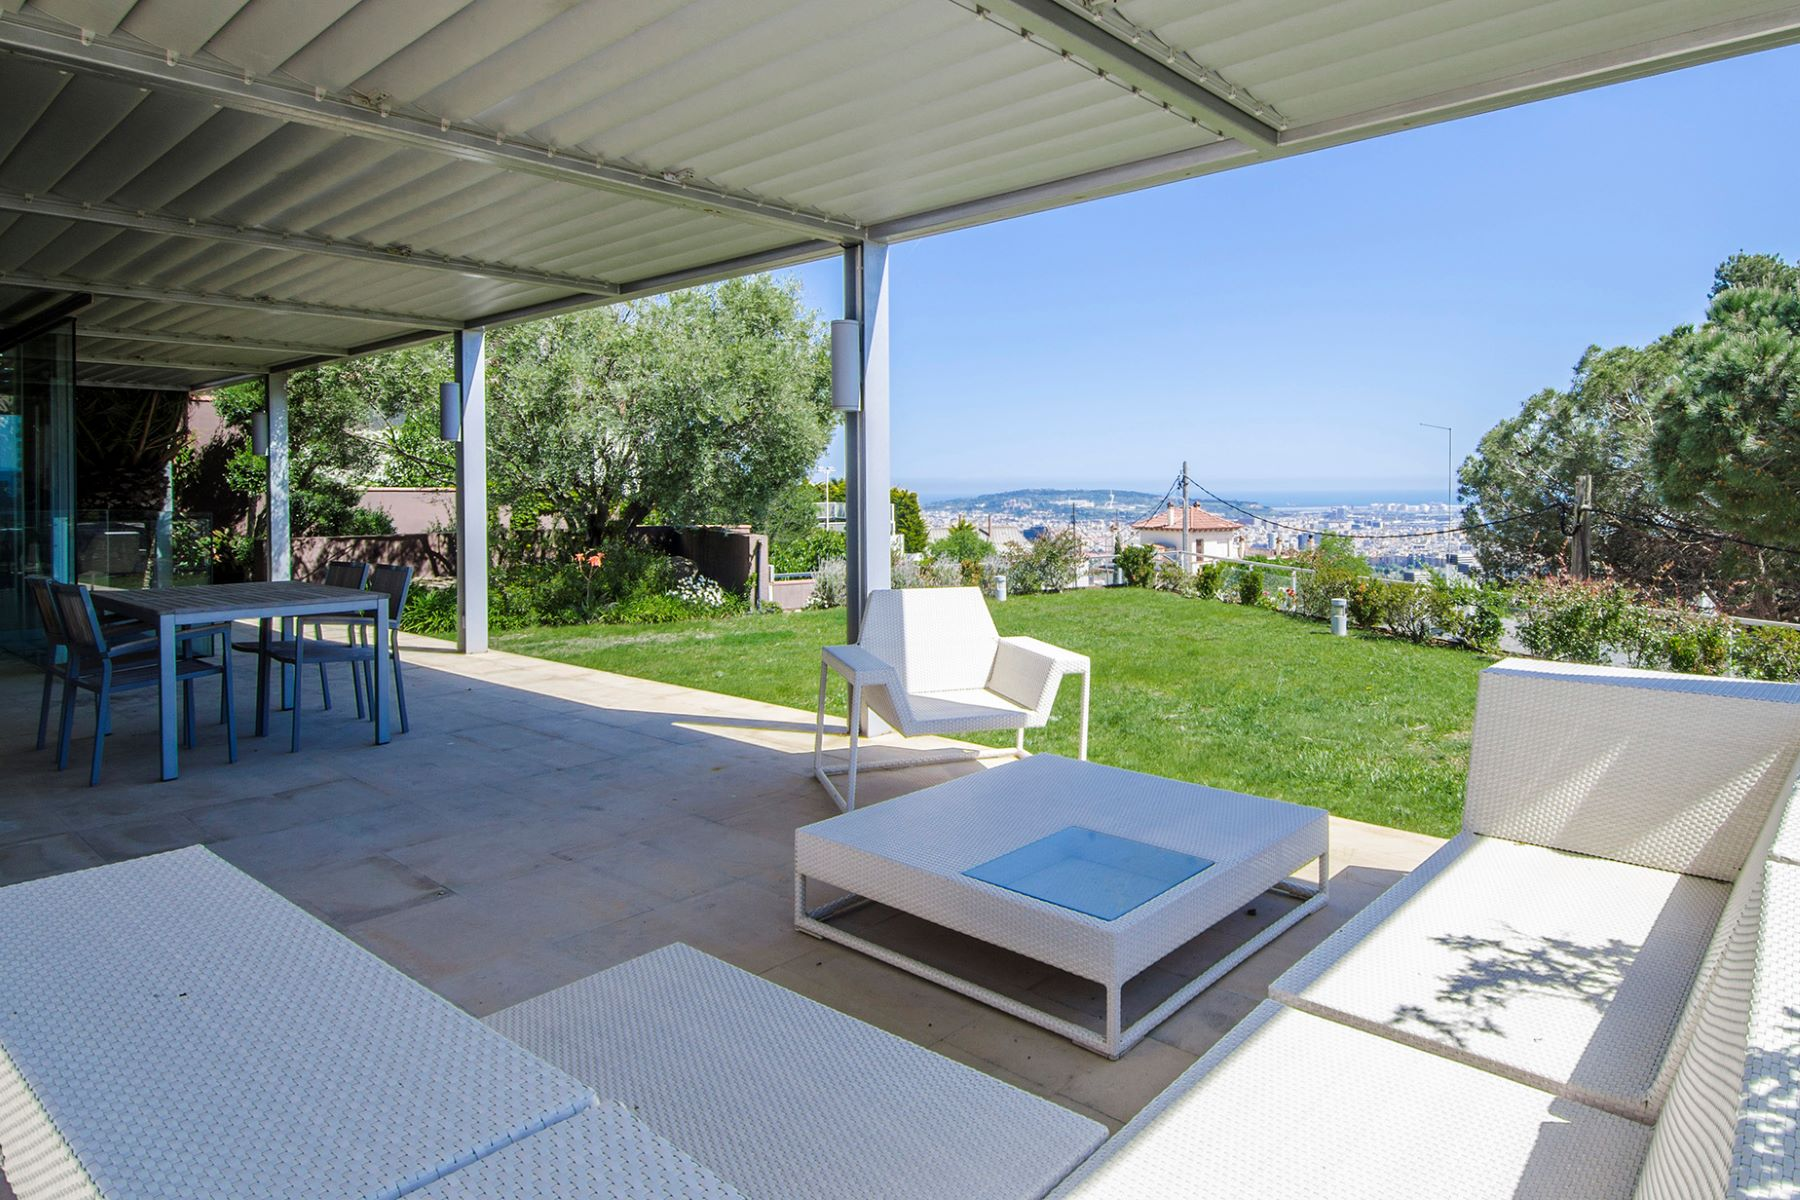 Single Family Home for Sale at Villa with Spectacular Sea and Mountain Views Sant Just Desvern, Barcelona, 08960 Spain